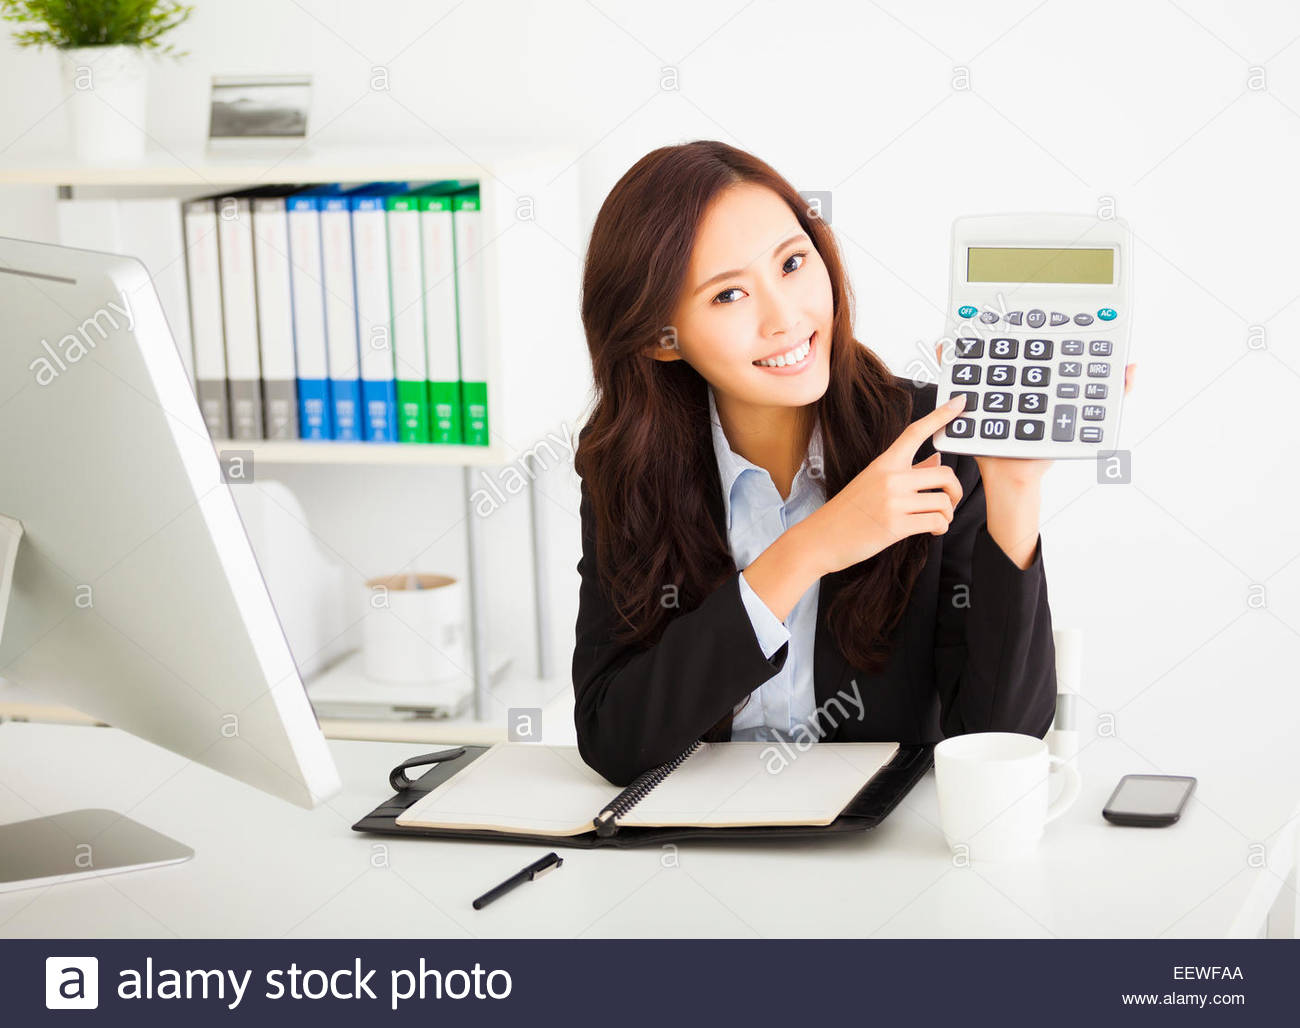 smart-business-woman-showing-the-calculator-in-office-EEWFAA